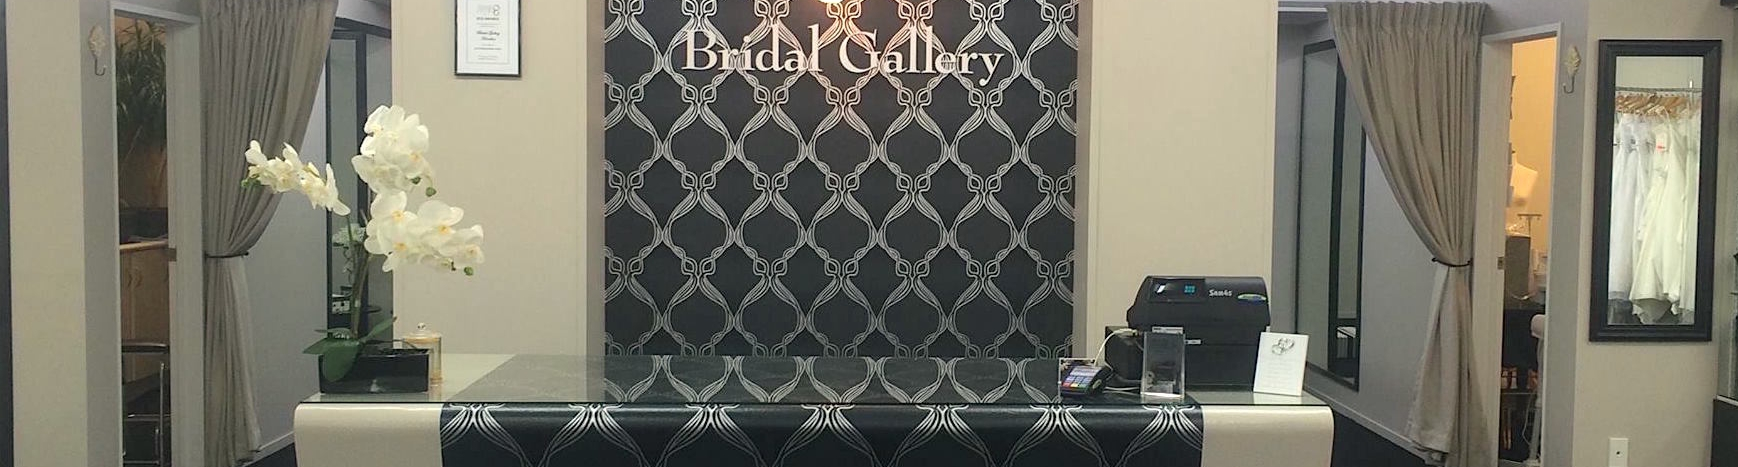 Bridal Gallery front desk.jpg